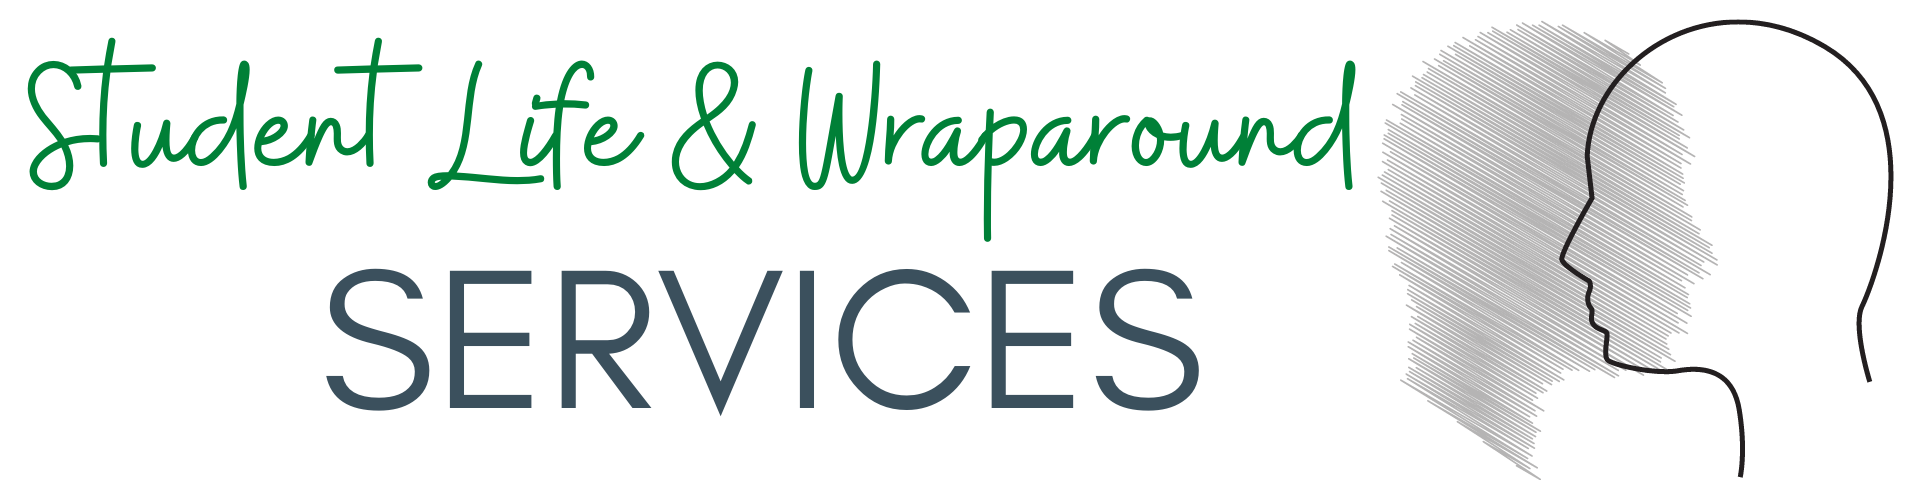 student life and wraparound services